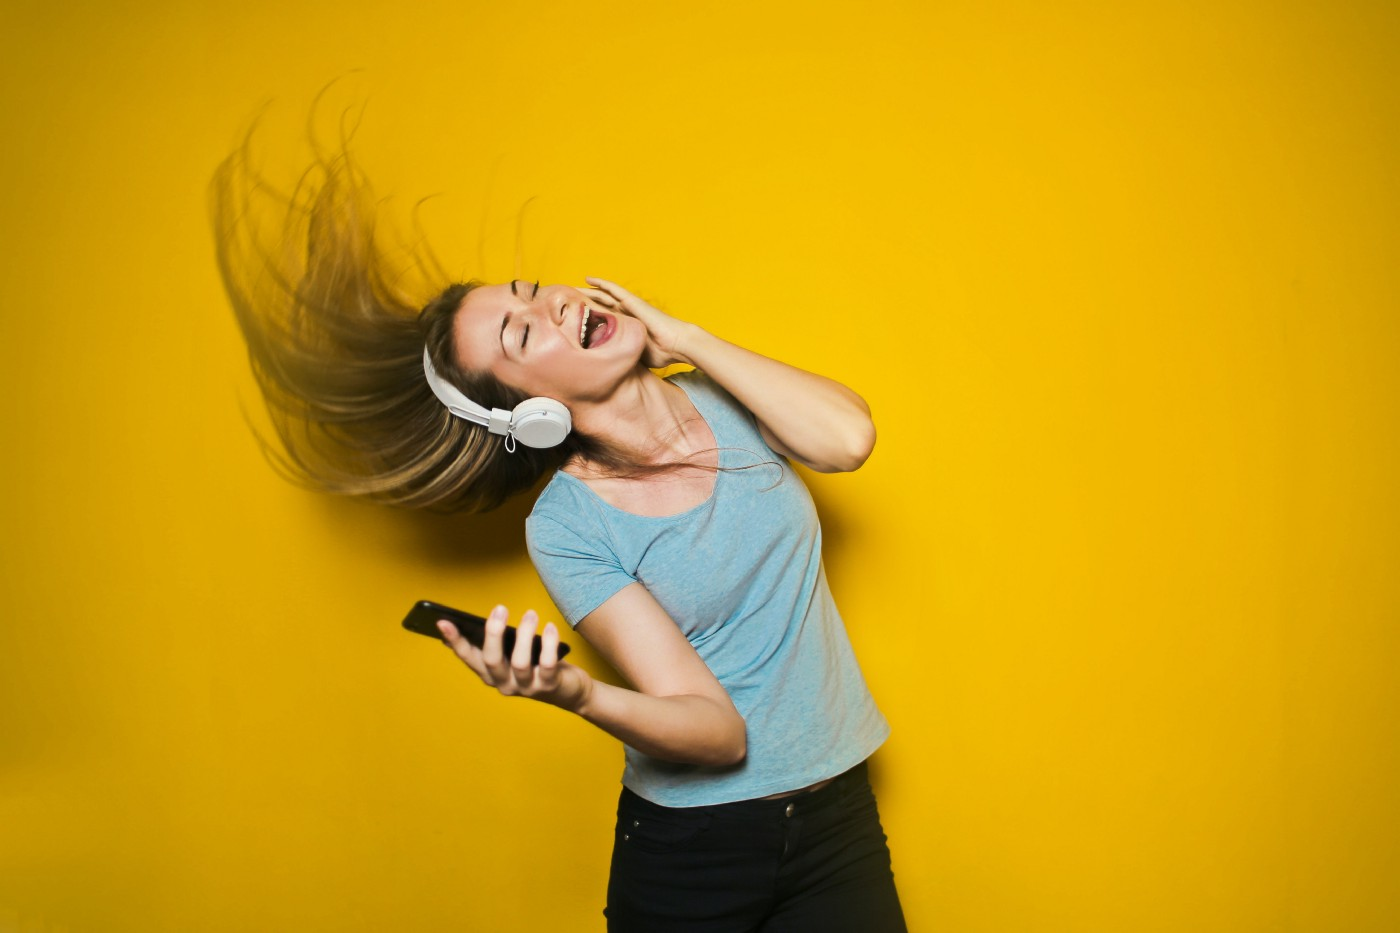 Woman with headphones on dancing to the music with her hair flying up in the air